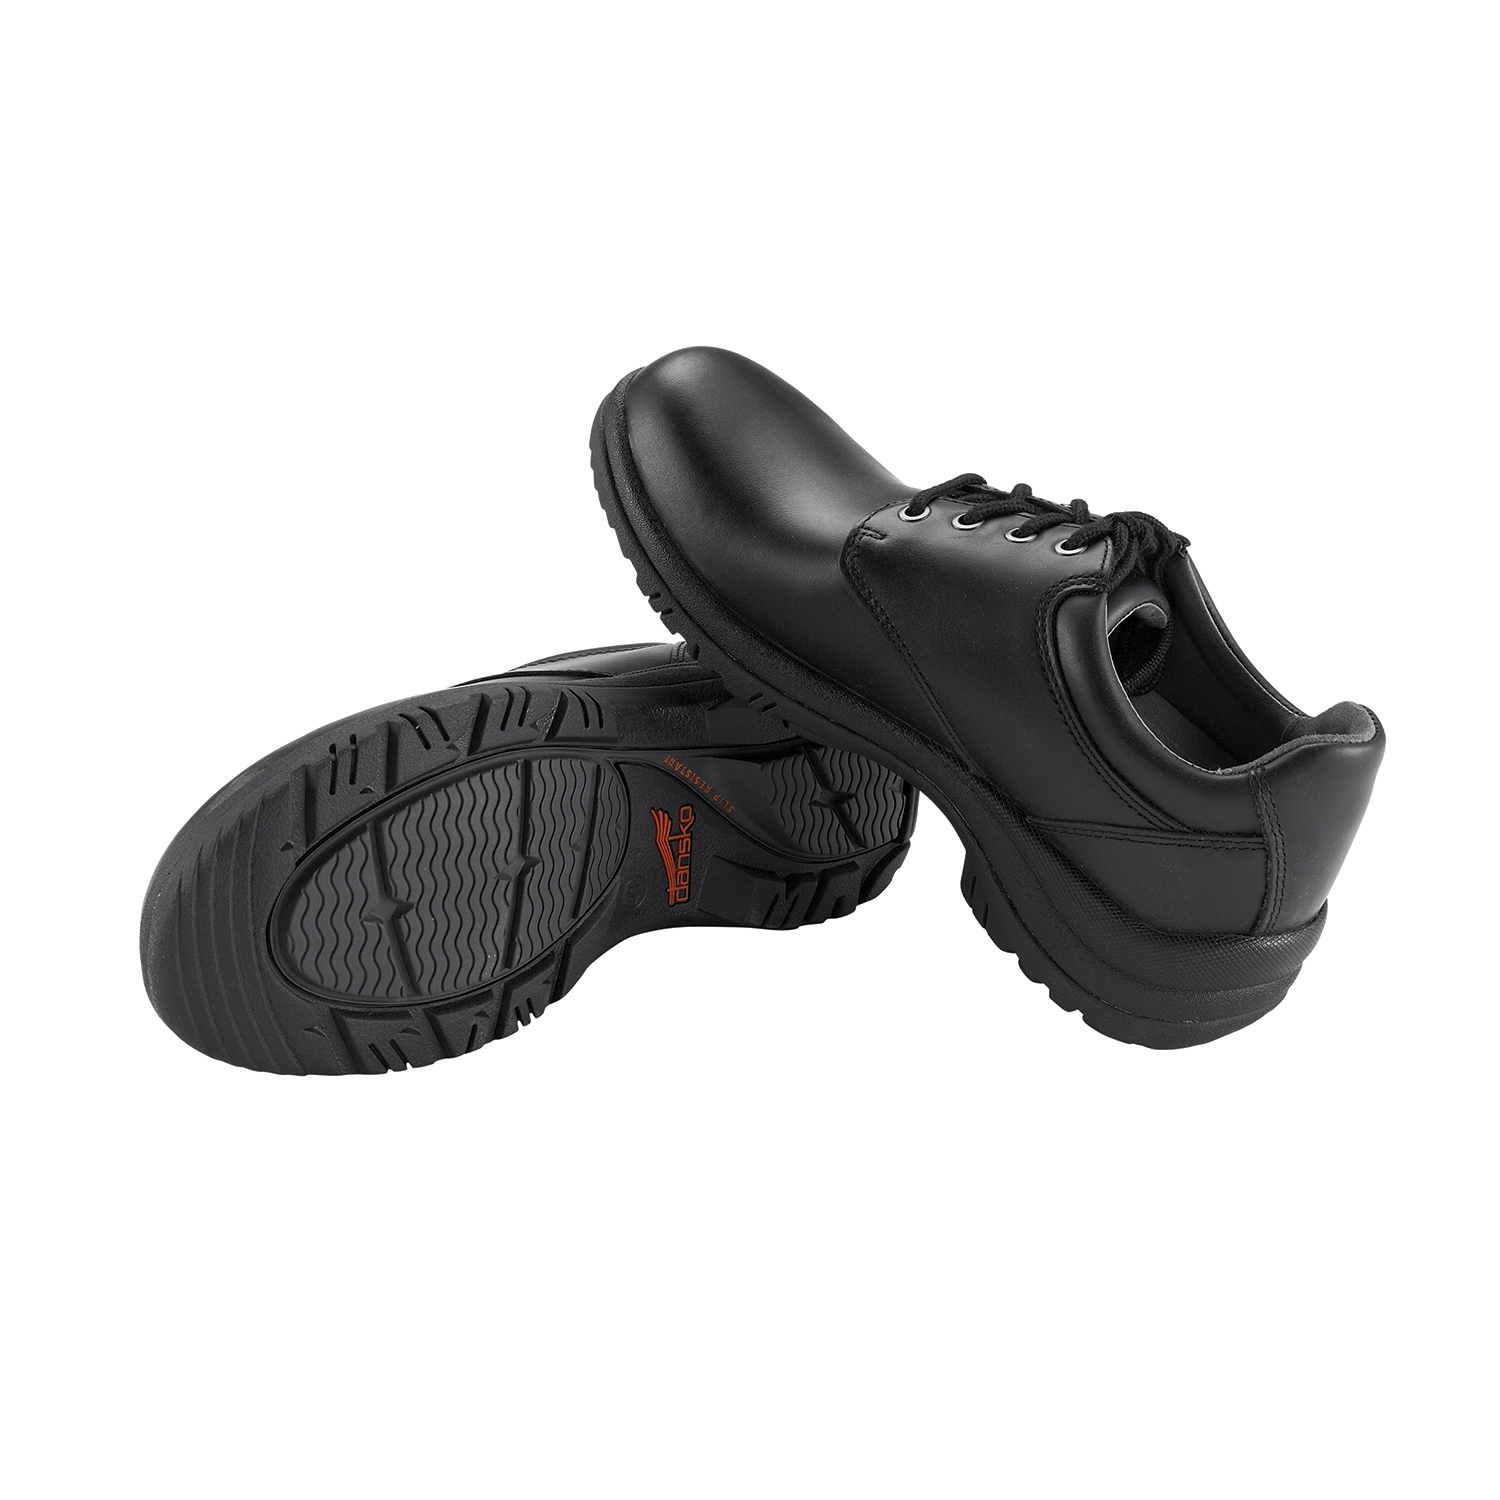 Dansko Lace Up Chef Shoes 7200 Chefwear